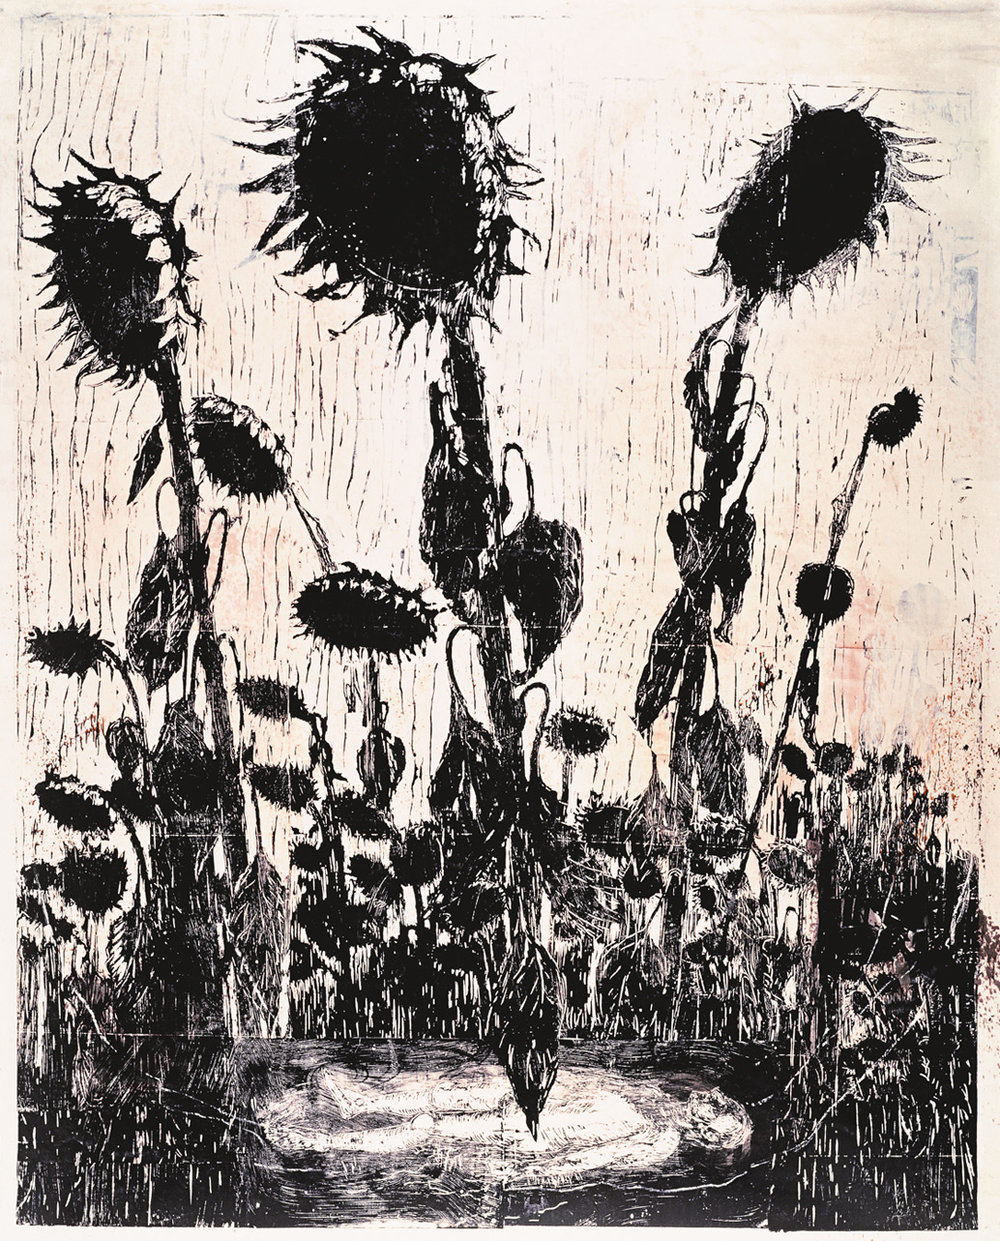 Kiefer_A_Girasoles-Tournesols_1996.jpg